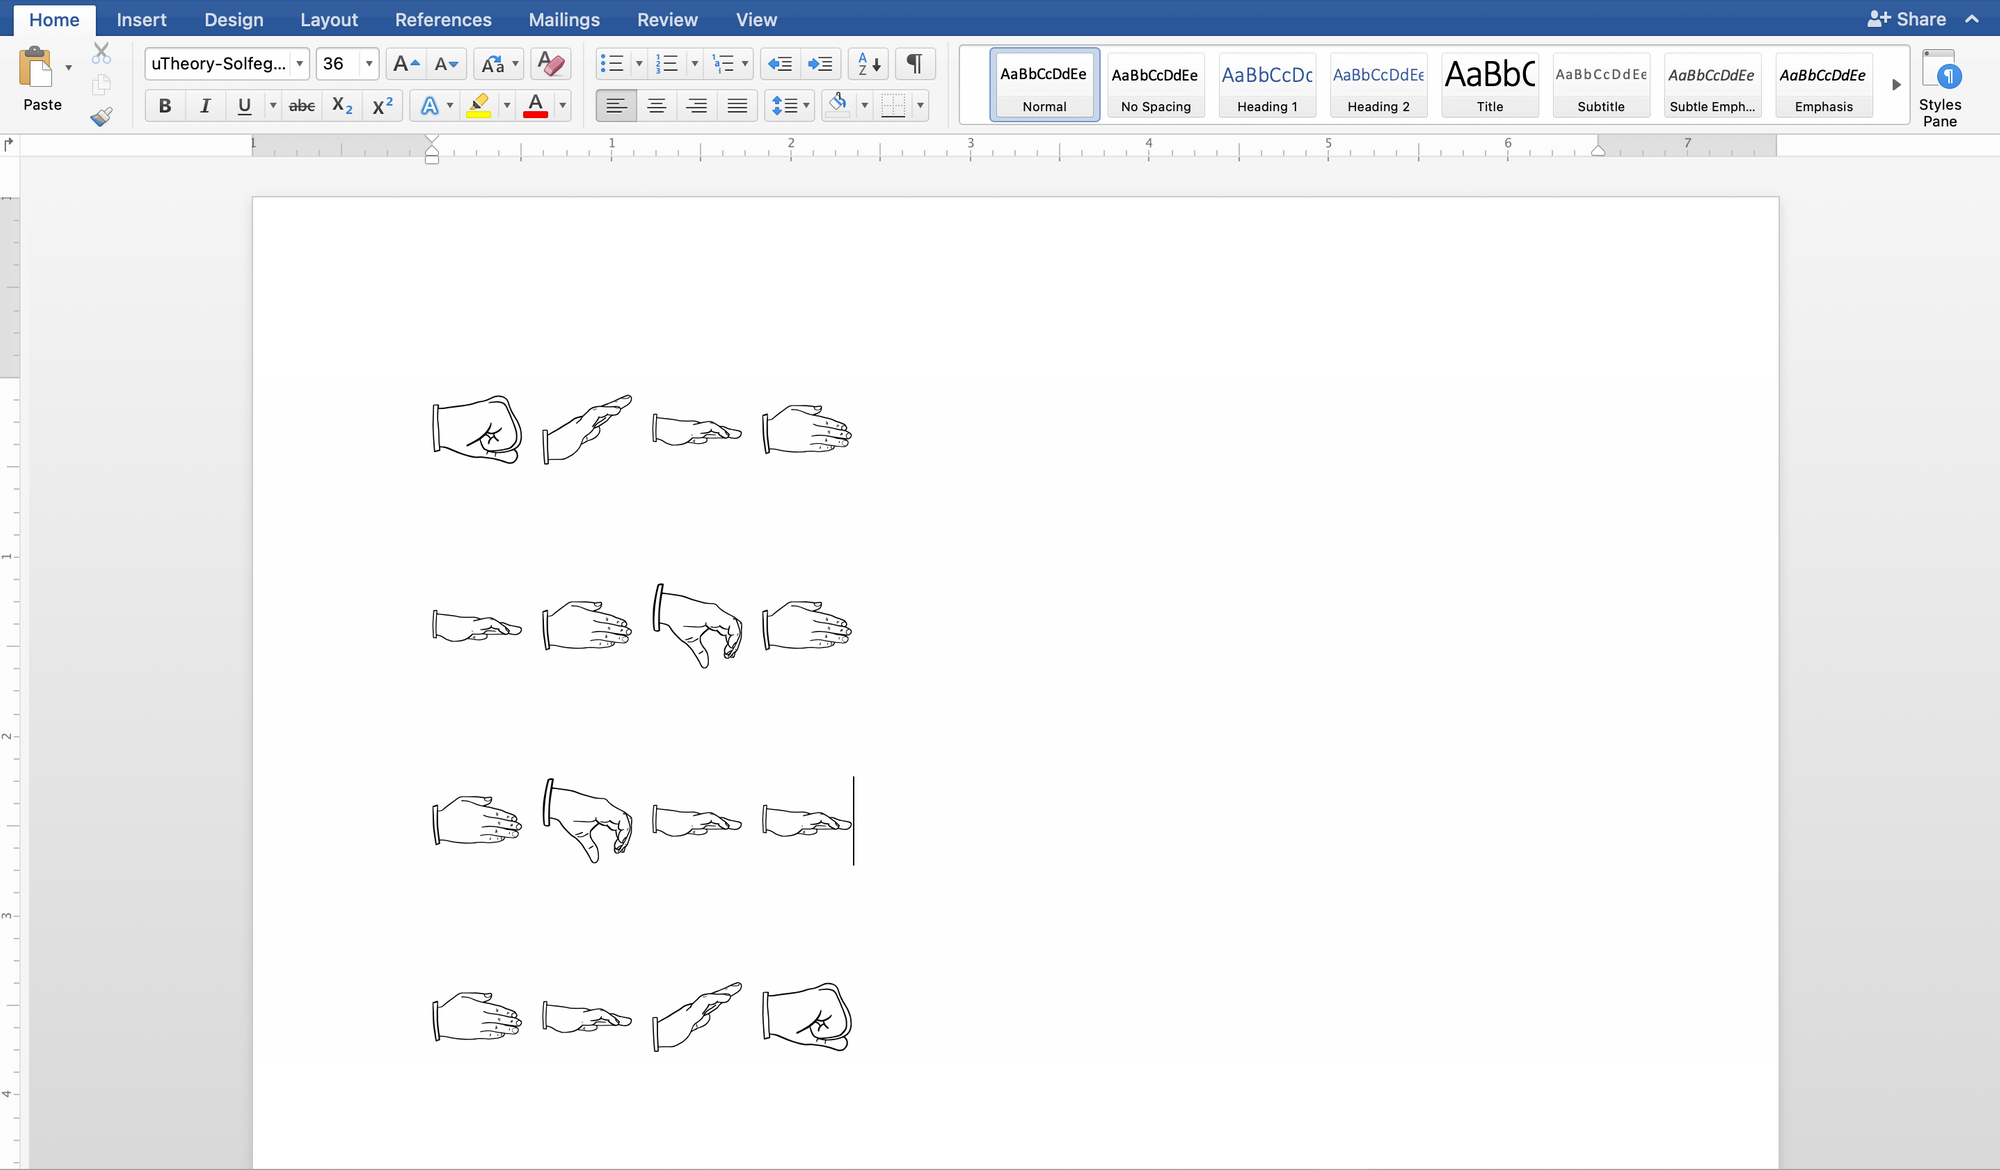 Image of using uTheory's solfege hand sign font to write out melodies in a word processor